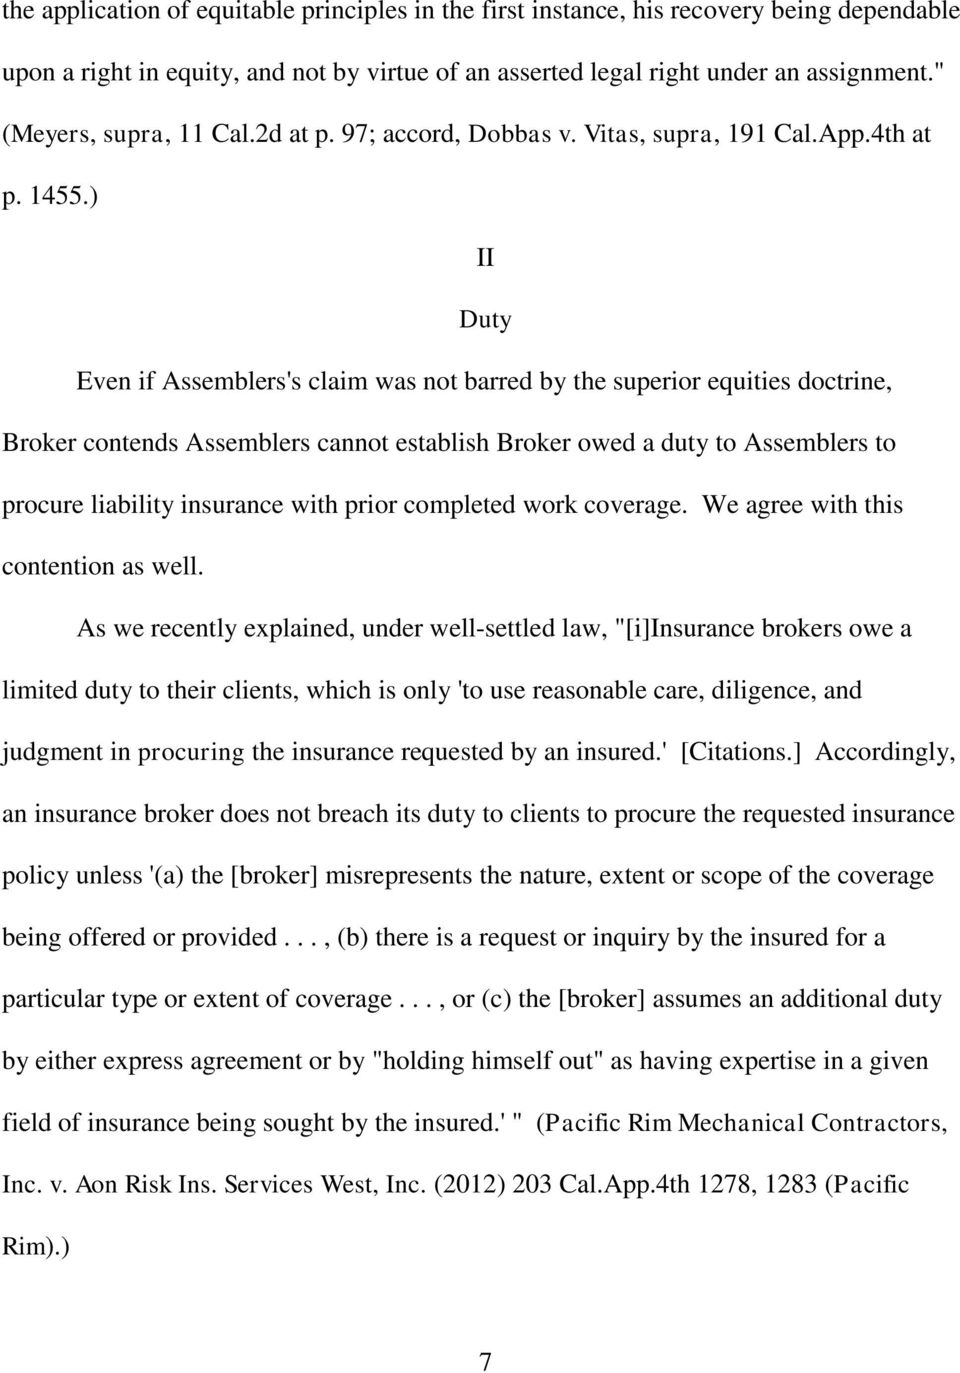 ) II Duty Even if Assemblers's claim was not barred by the superior equities doctrine, Broker contends Assemblers cannot establish Broker owed a duty to Assemblers to procure liability insurance with